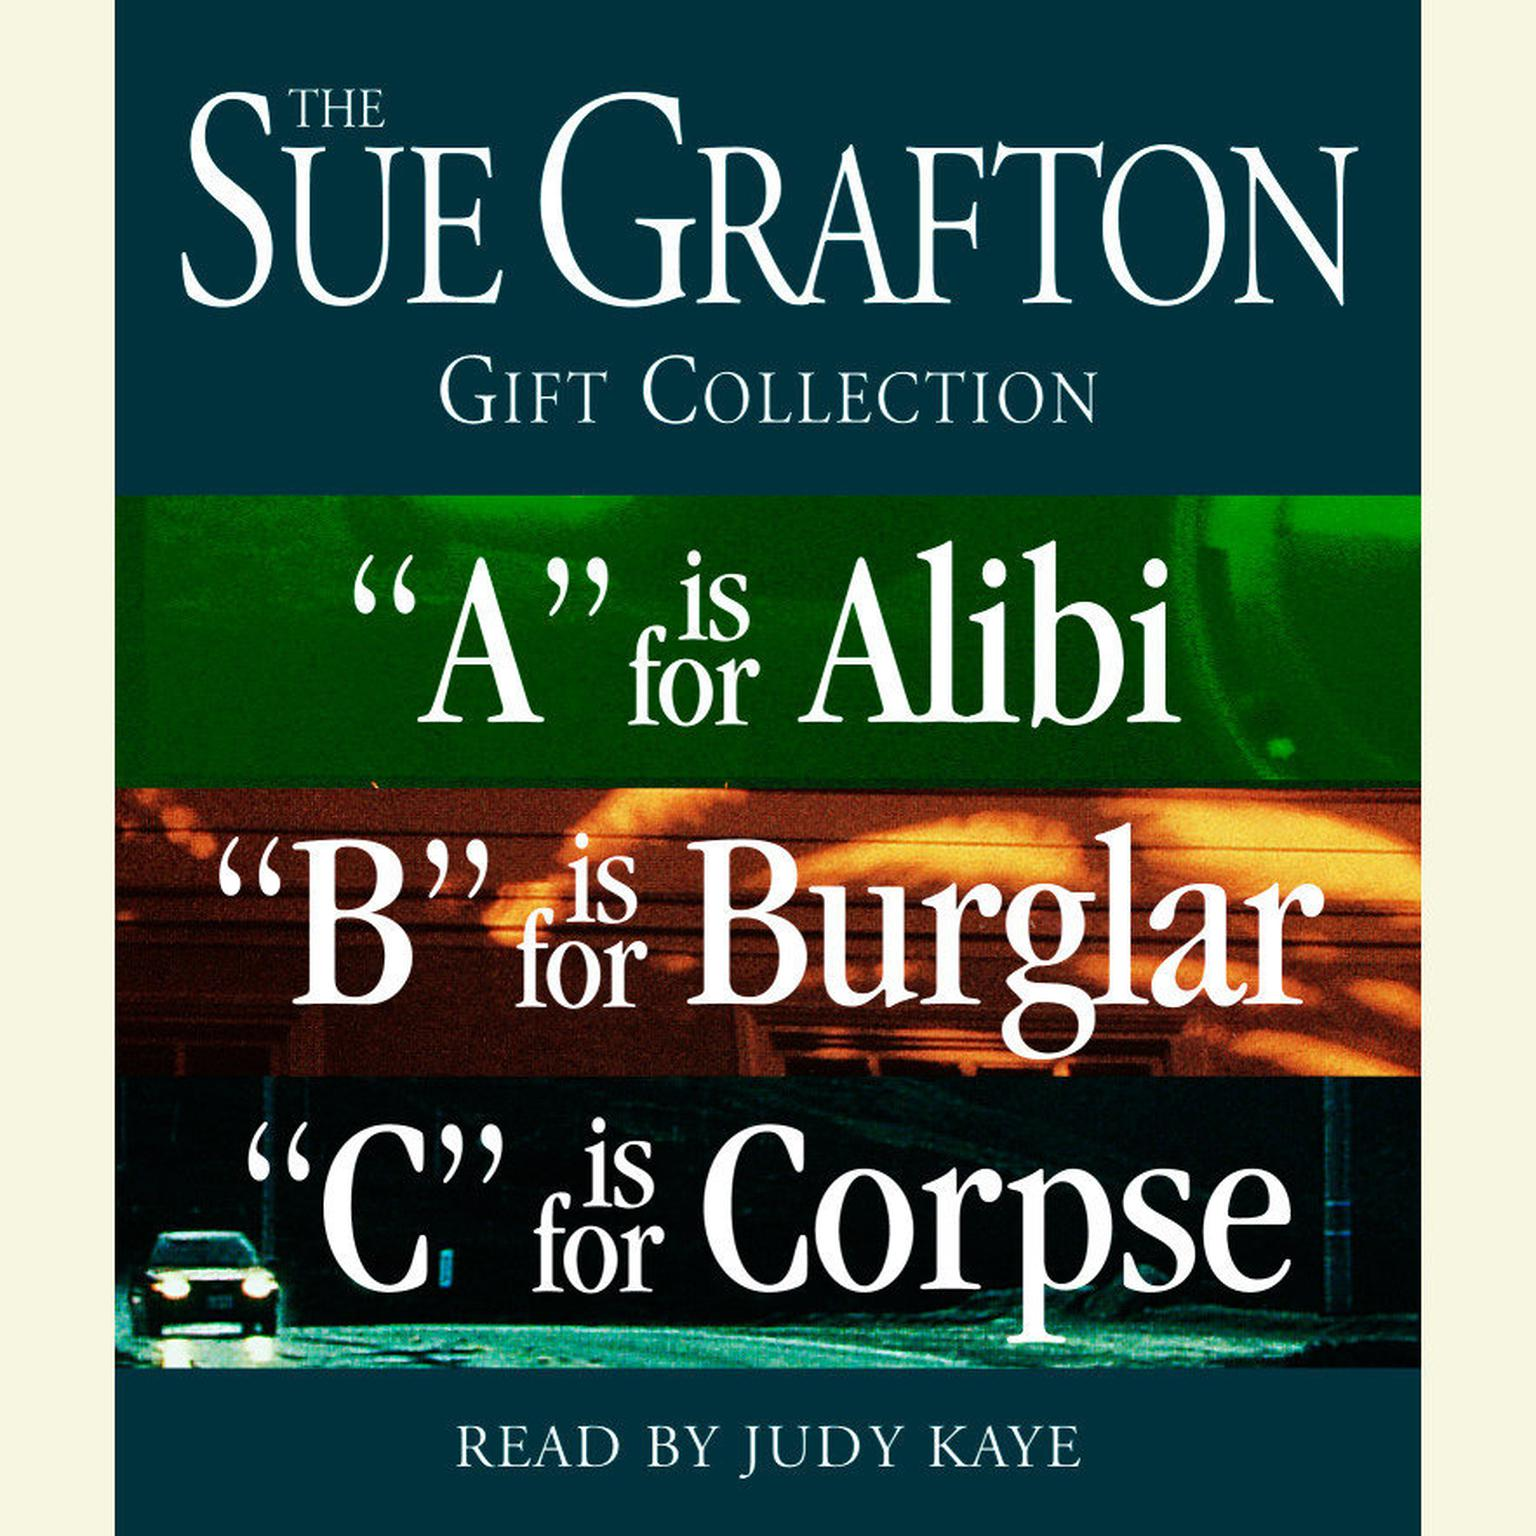 sue grafton abc mystery series - photo#23